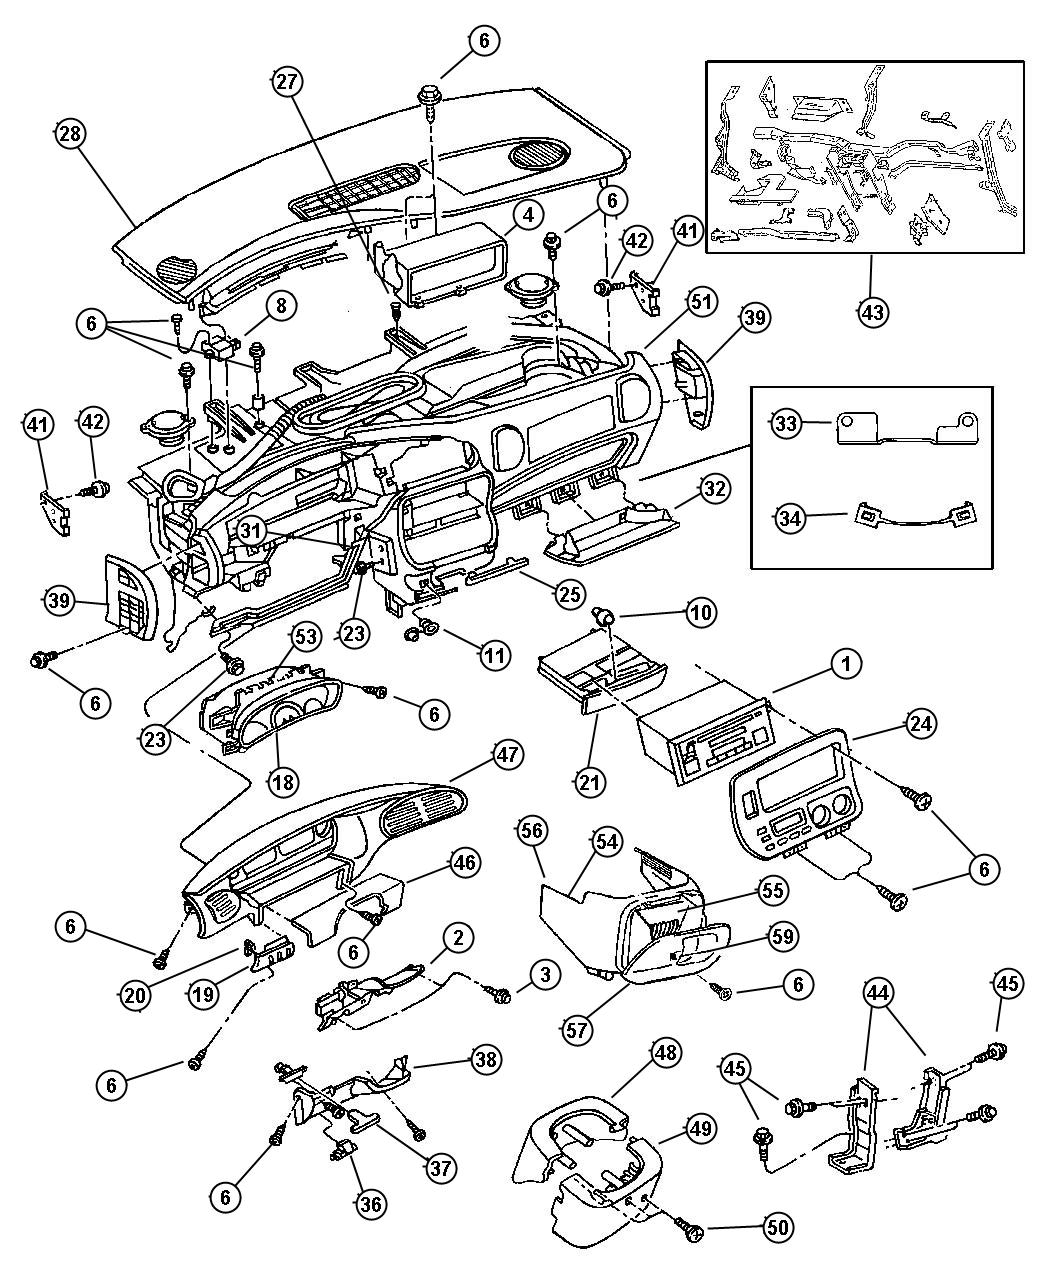 Grand Caravan Engine Diagram